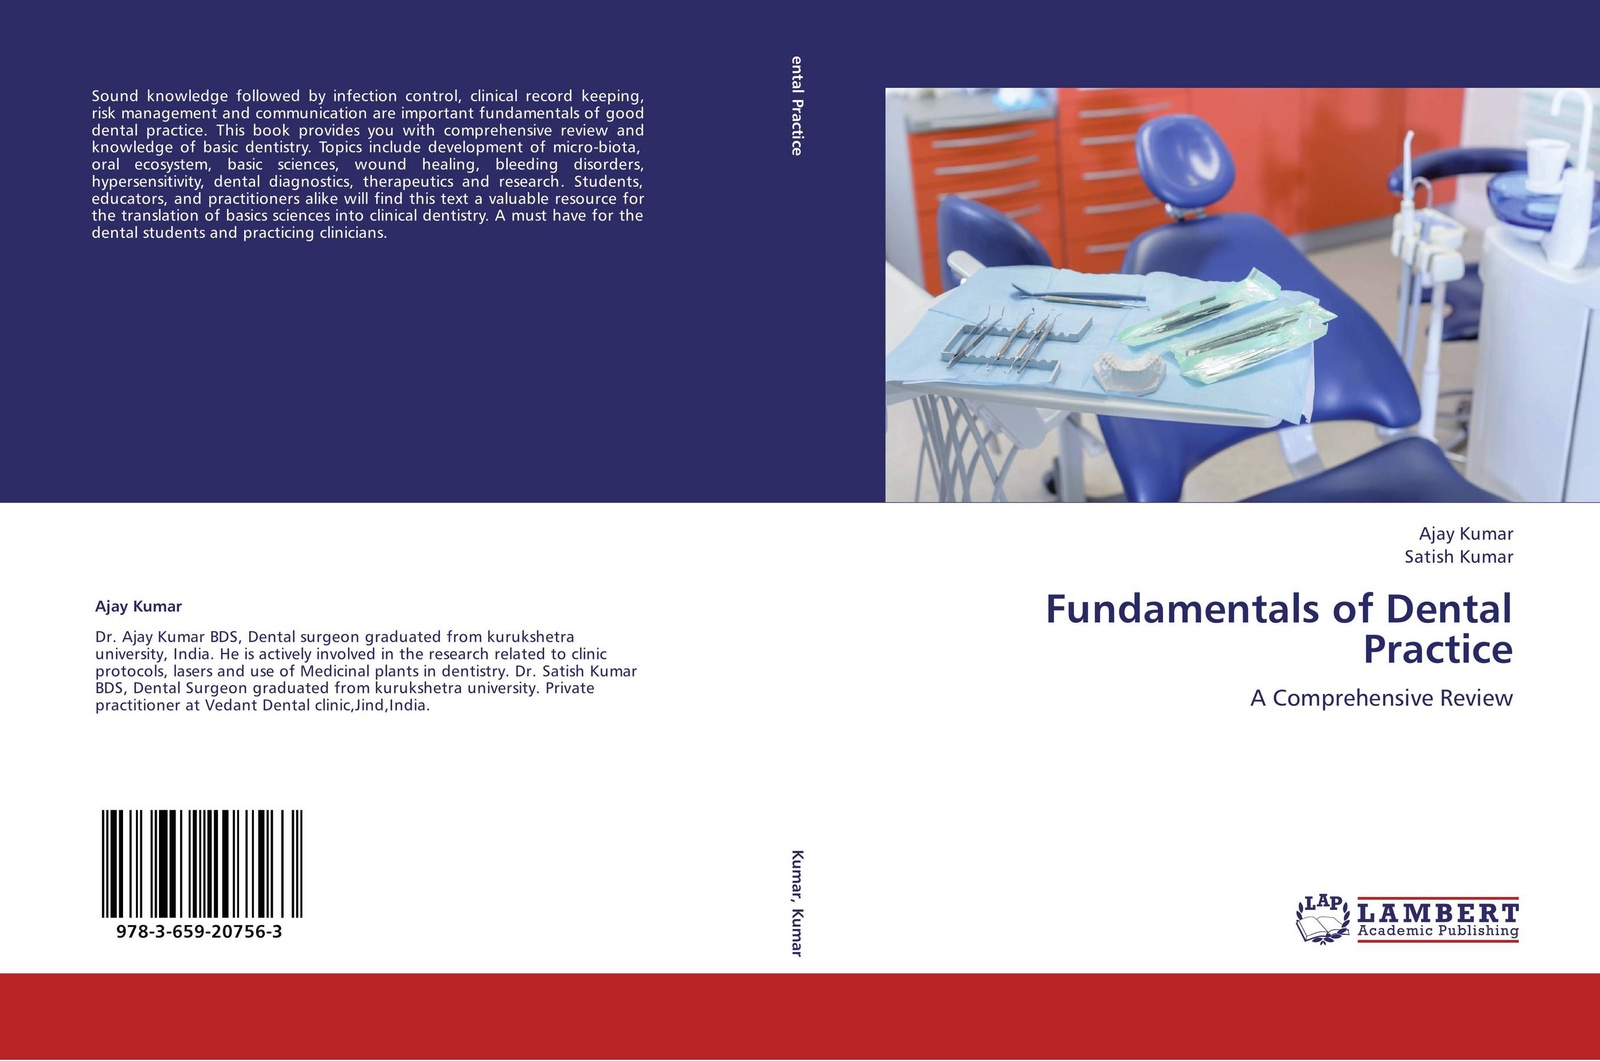 Ajay Kumar and Satish Kumar Fundamentals of Dental Practice